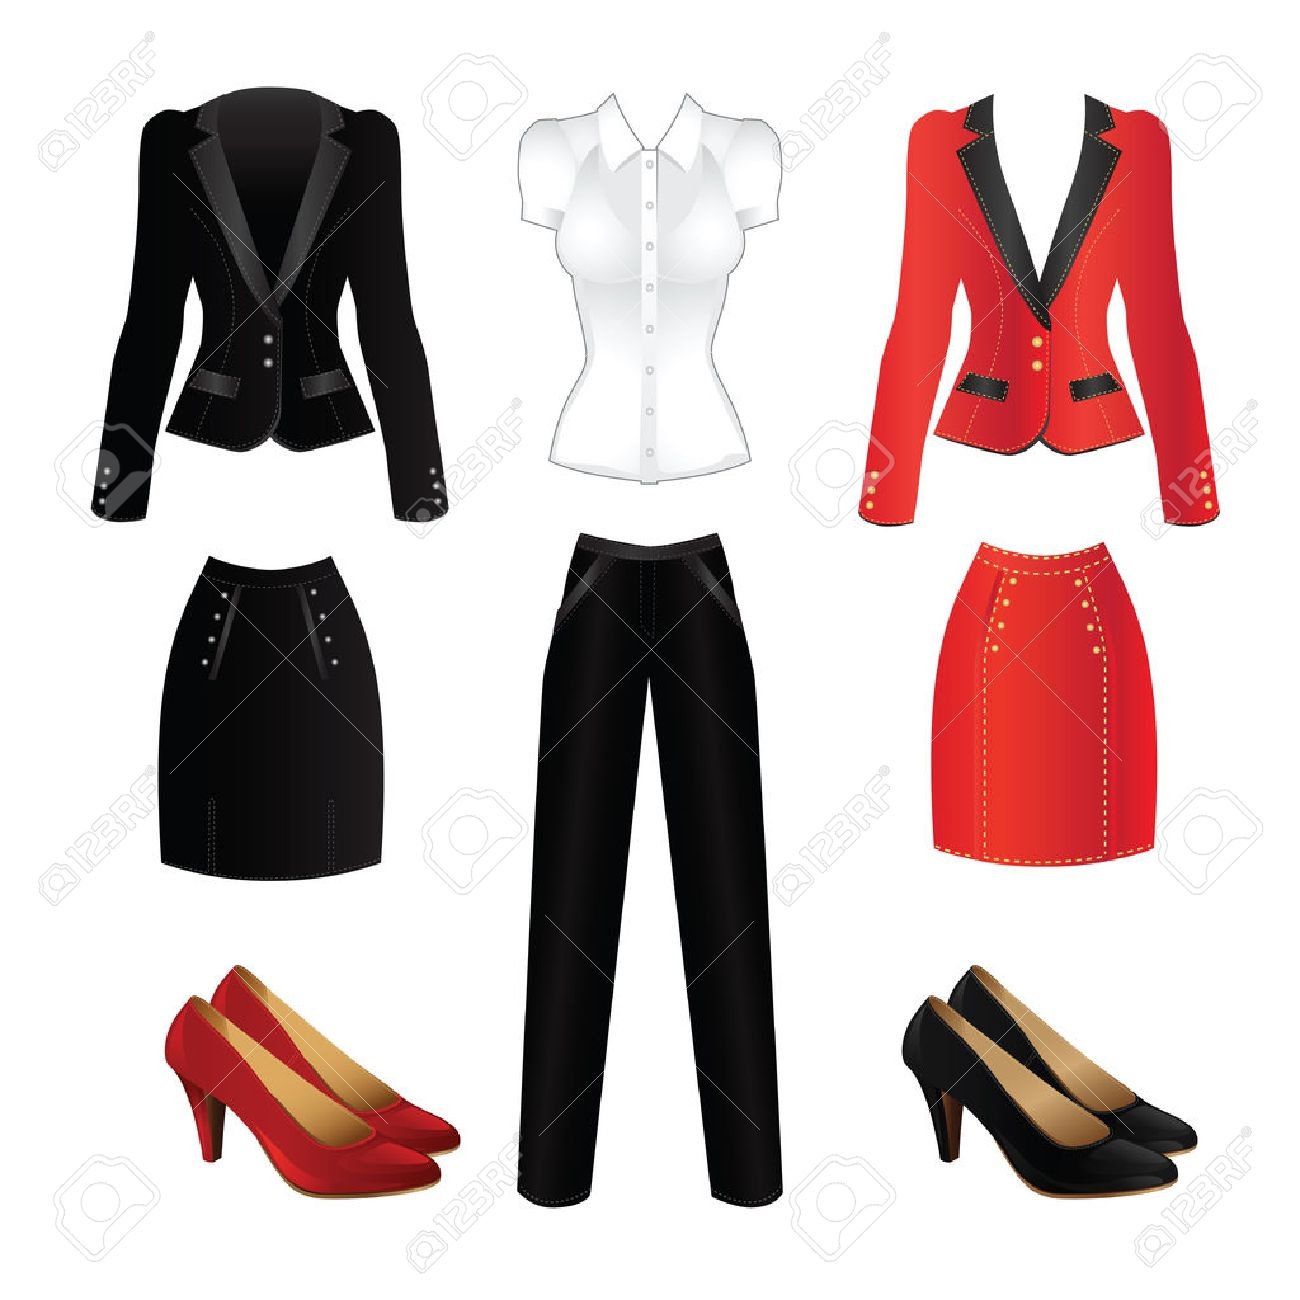 0102a70a61 Clothes for women. Red formal suit and black official suit. Classic